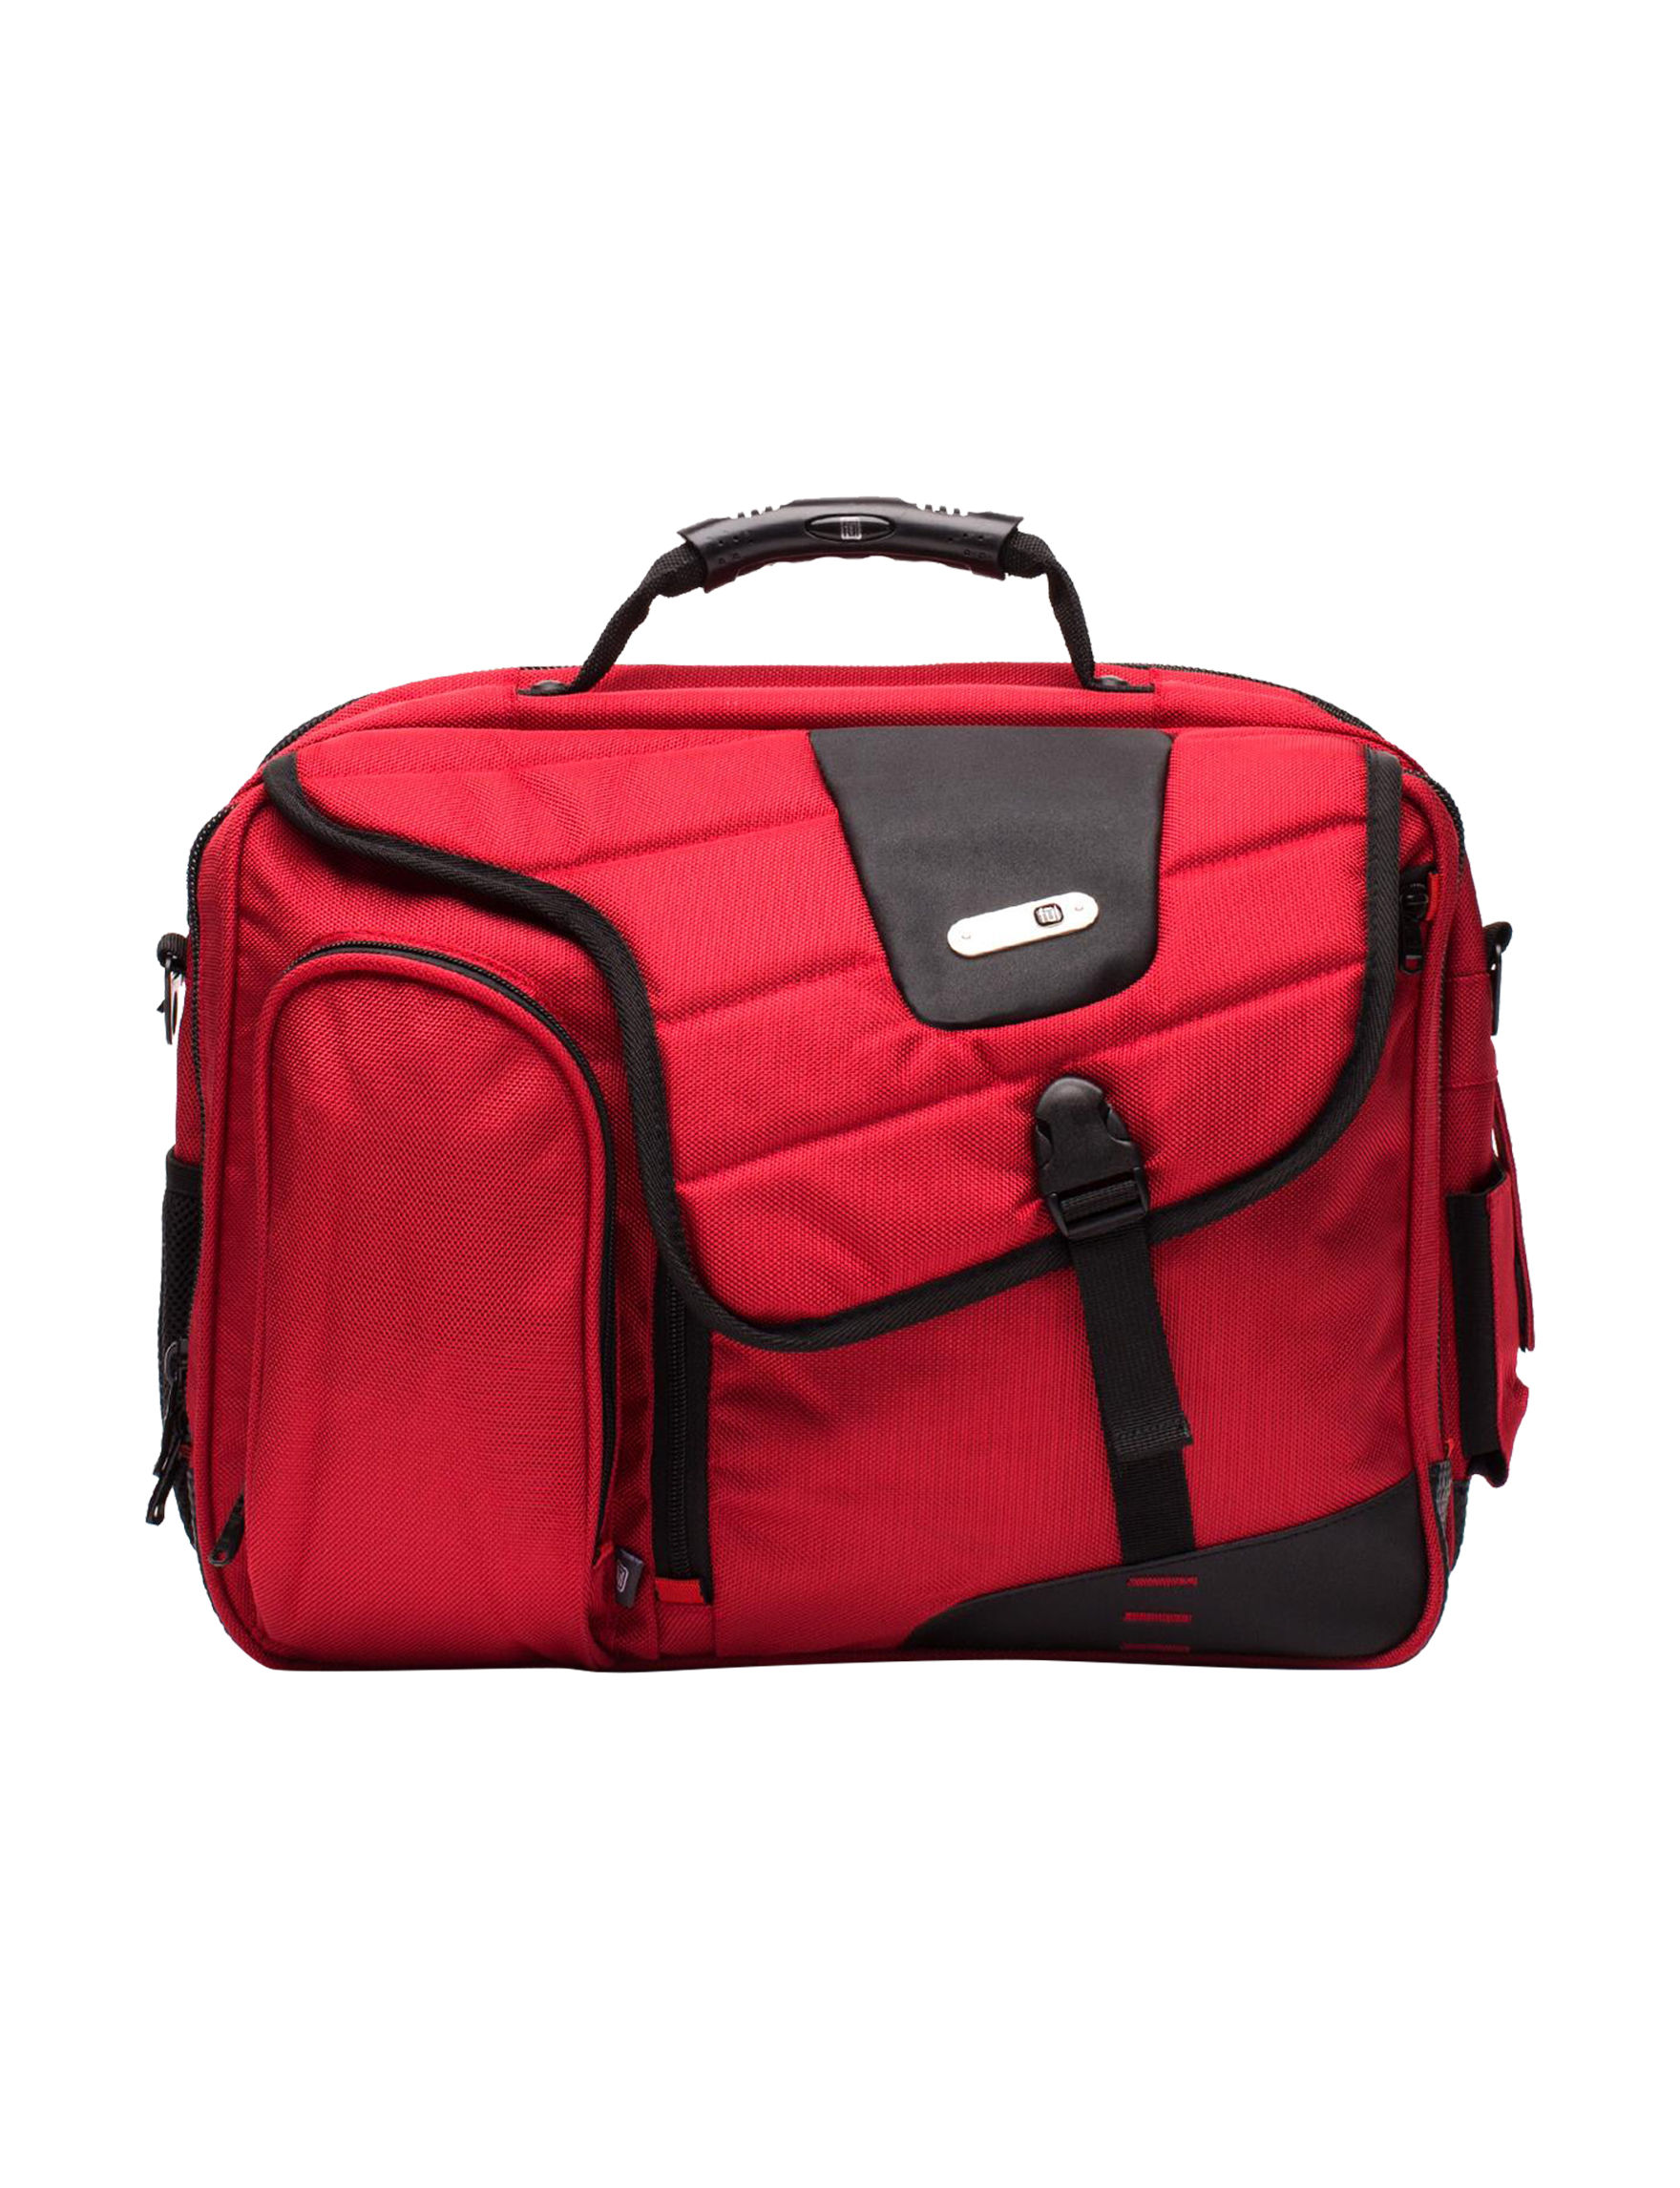 Ful Red Laptop & Messenger Bags